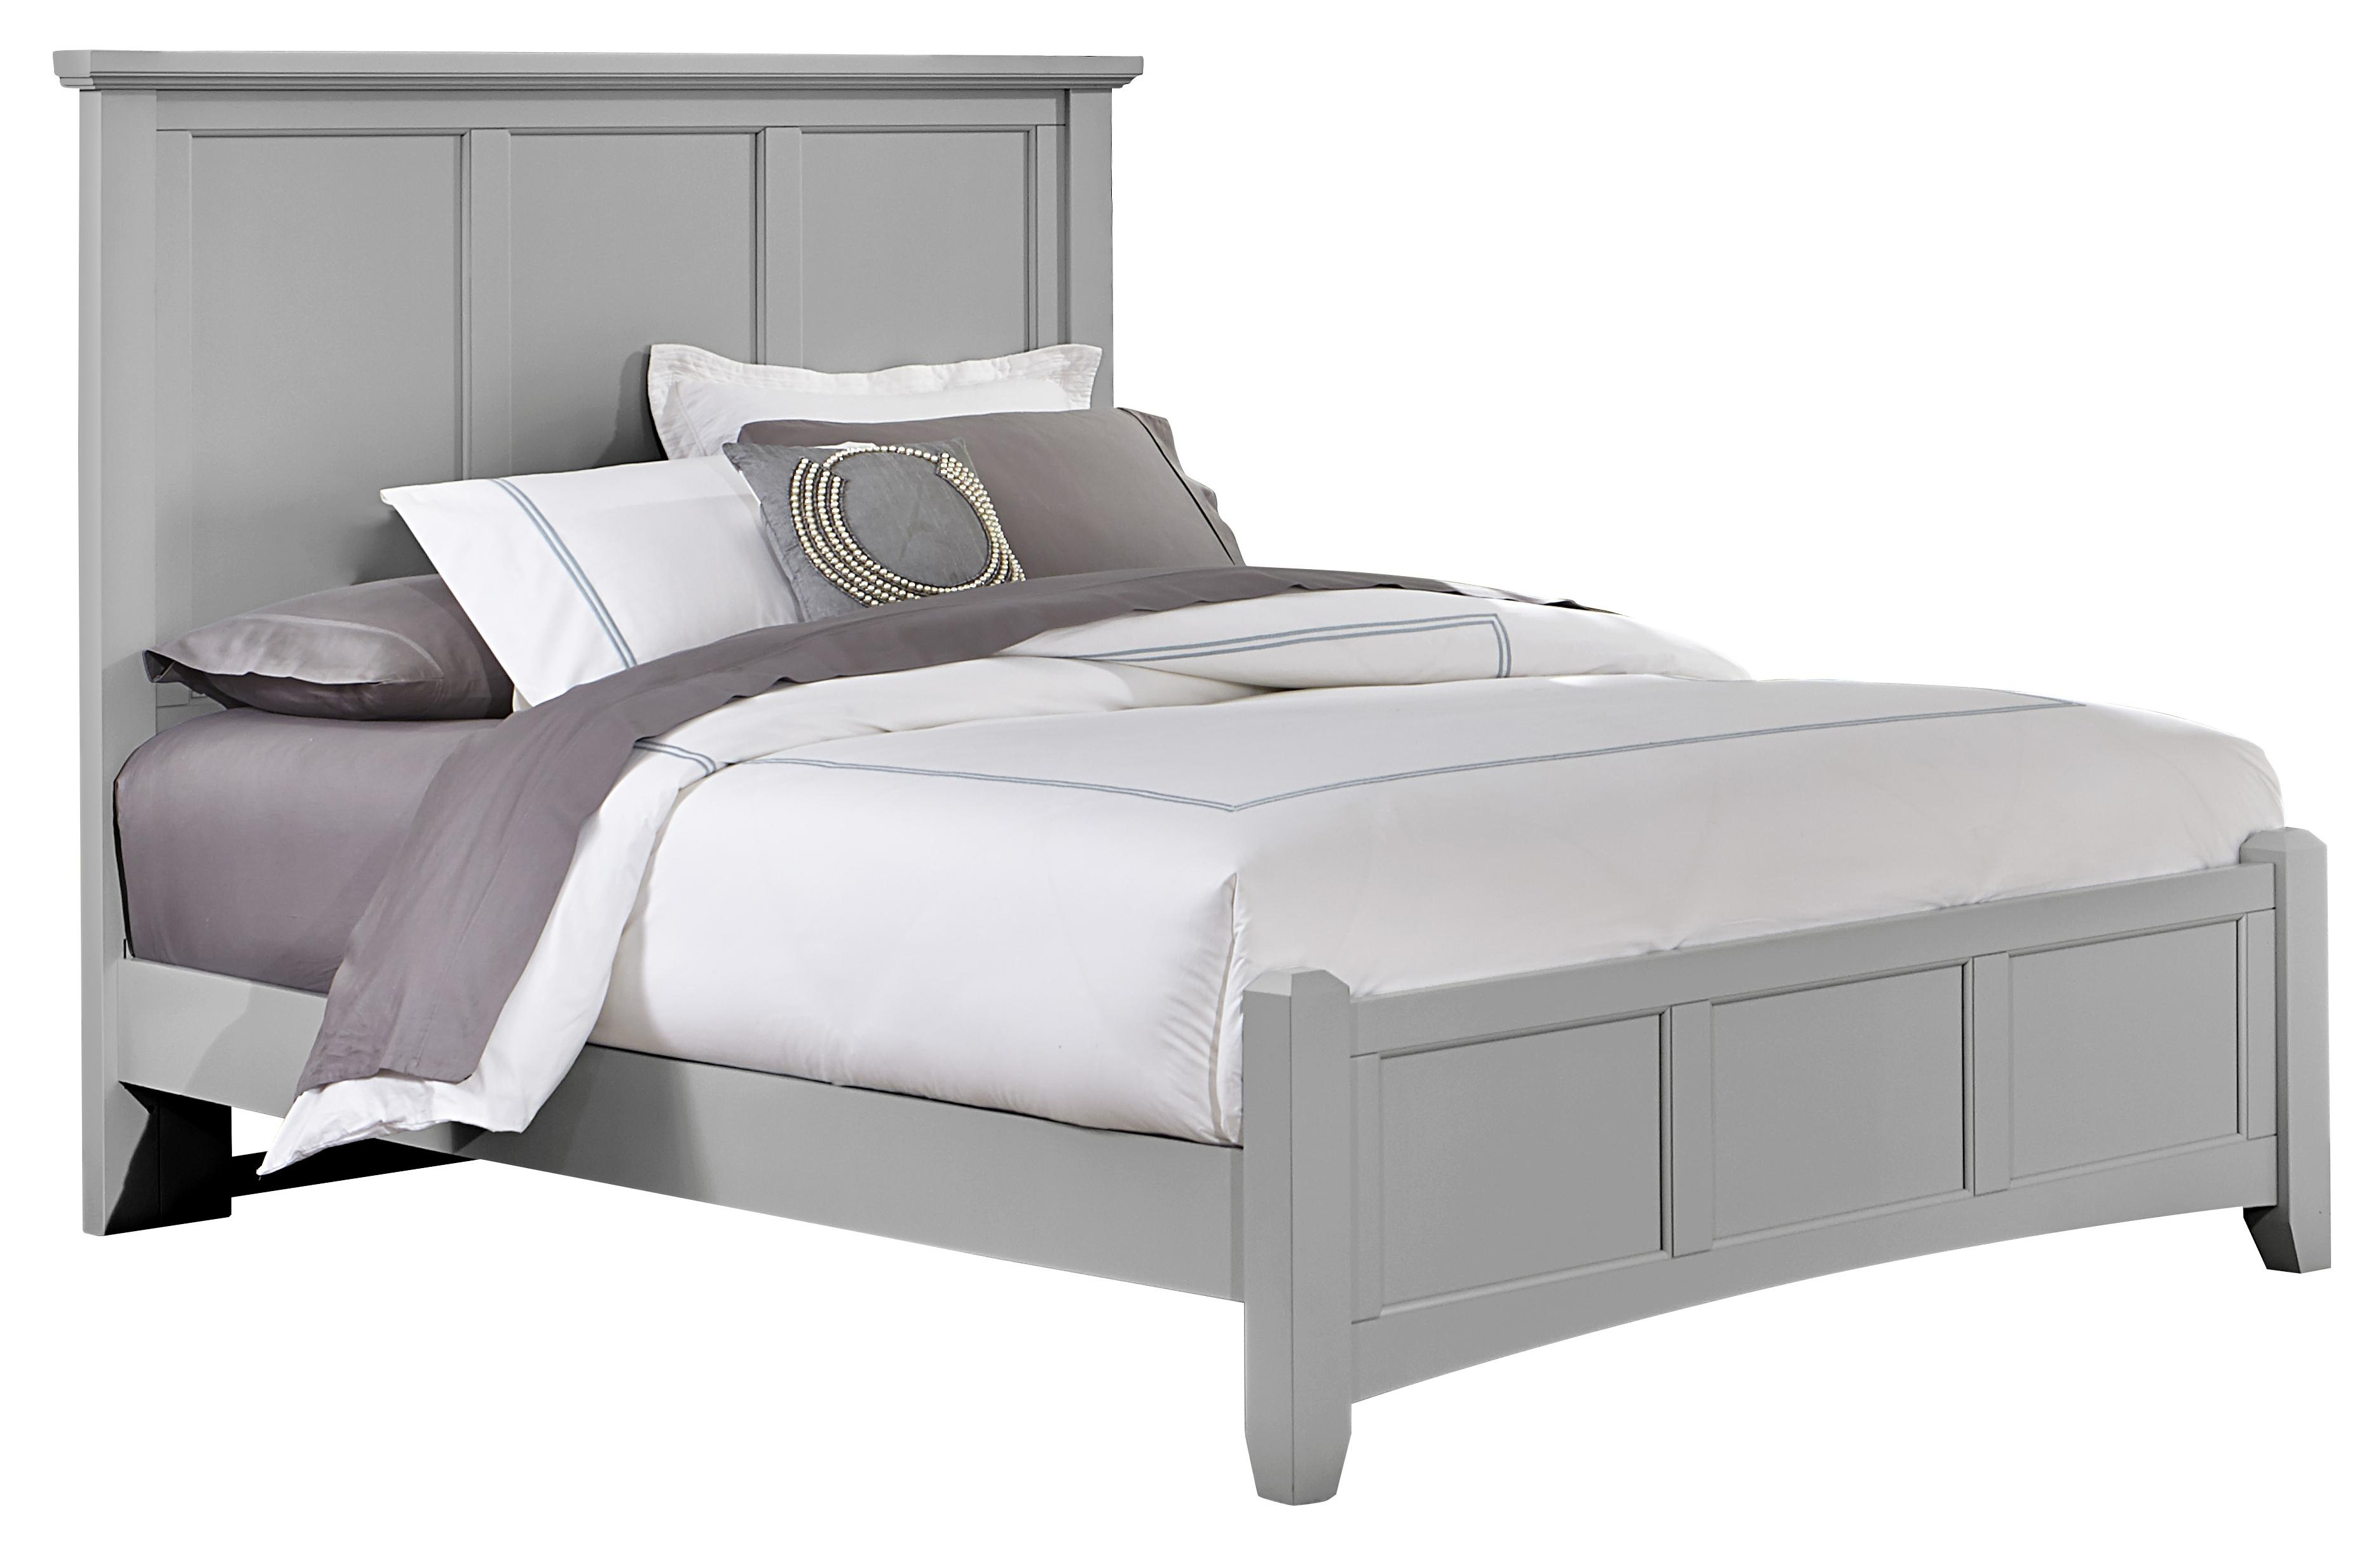 Bunkhouse King Mansion Bed by Vaughan-Bassett at Crowley Furniture & Mattress